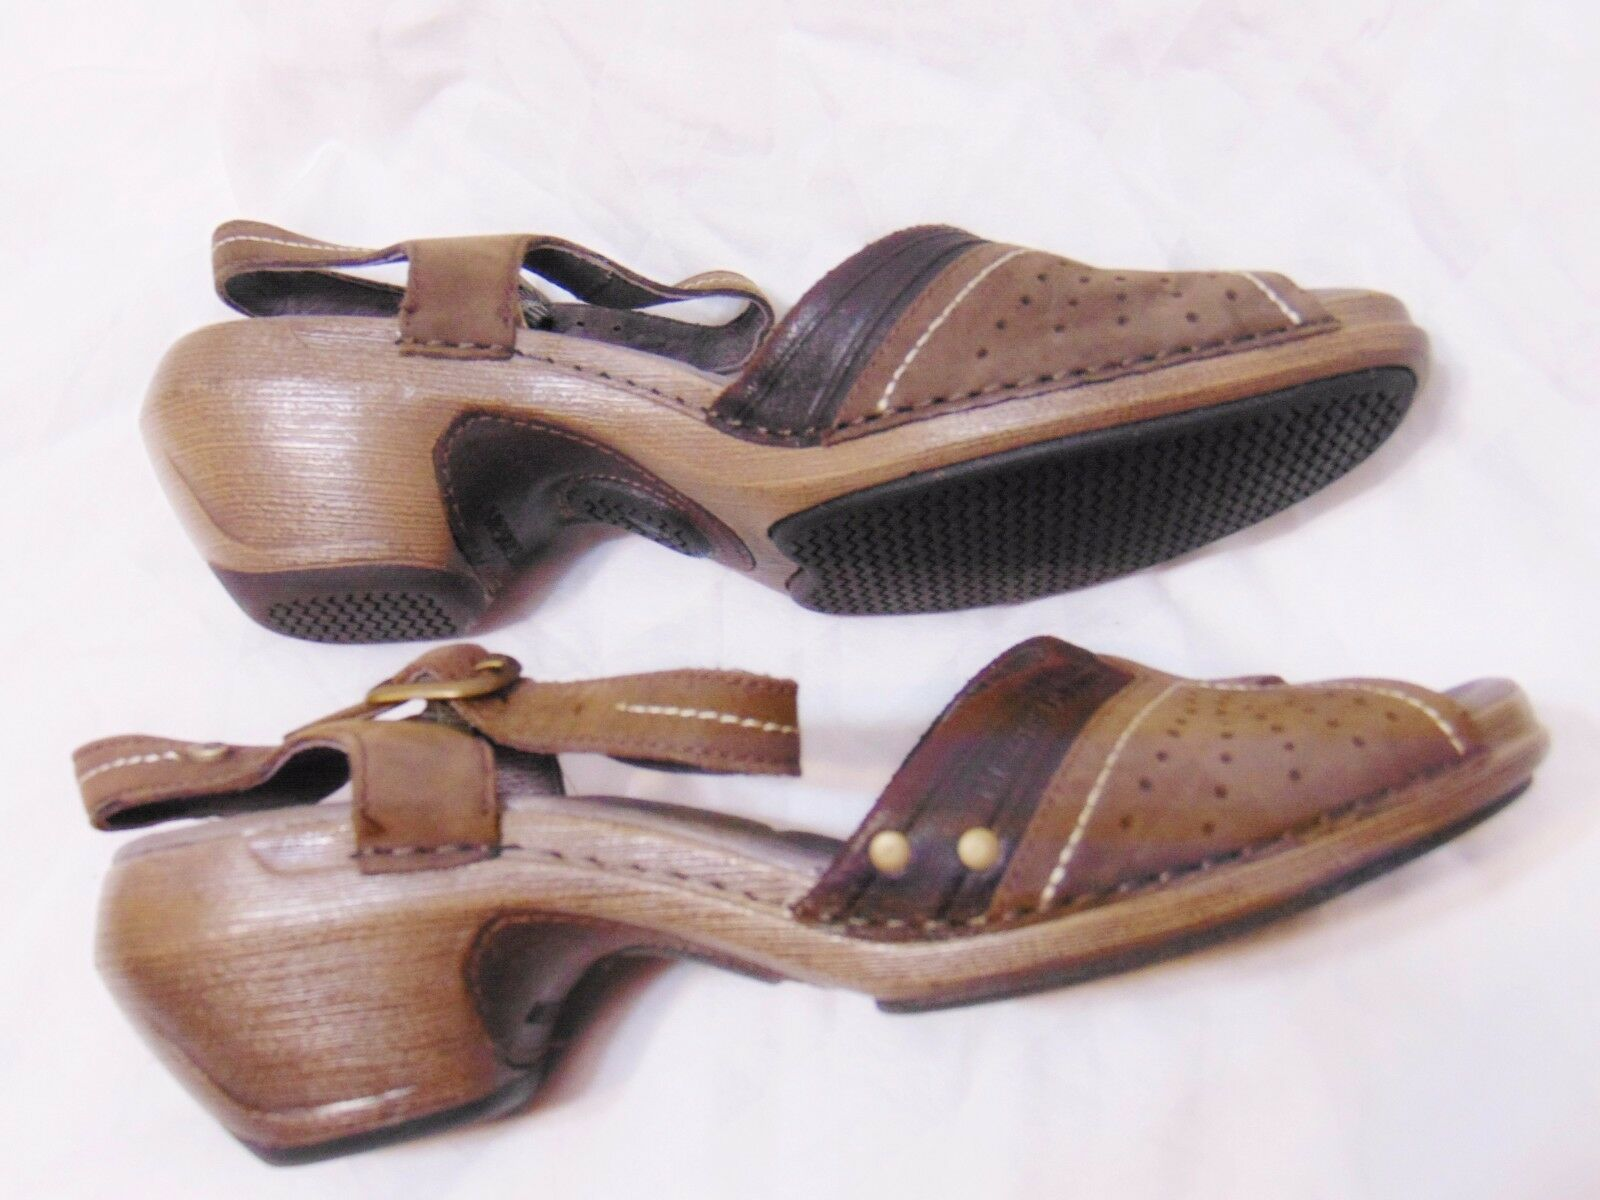 MERRELL Luxe Strap Mid Heel Sandals Shoes Sz 7 Coffee/Brown Leather Walking Work